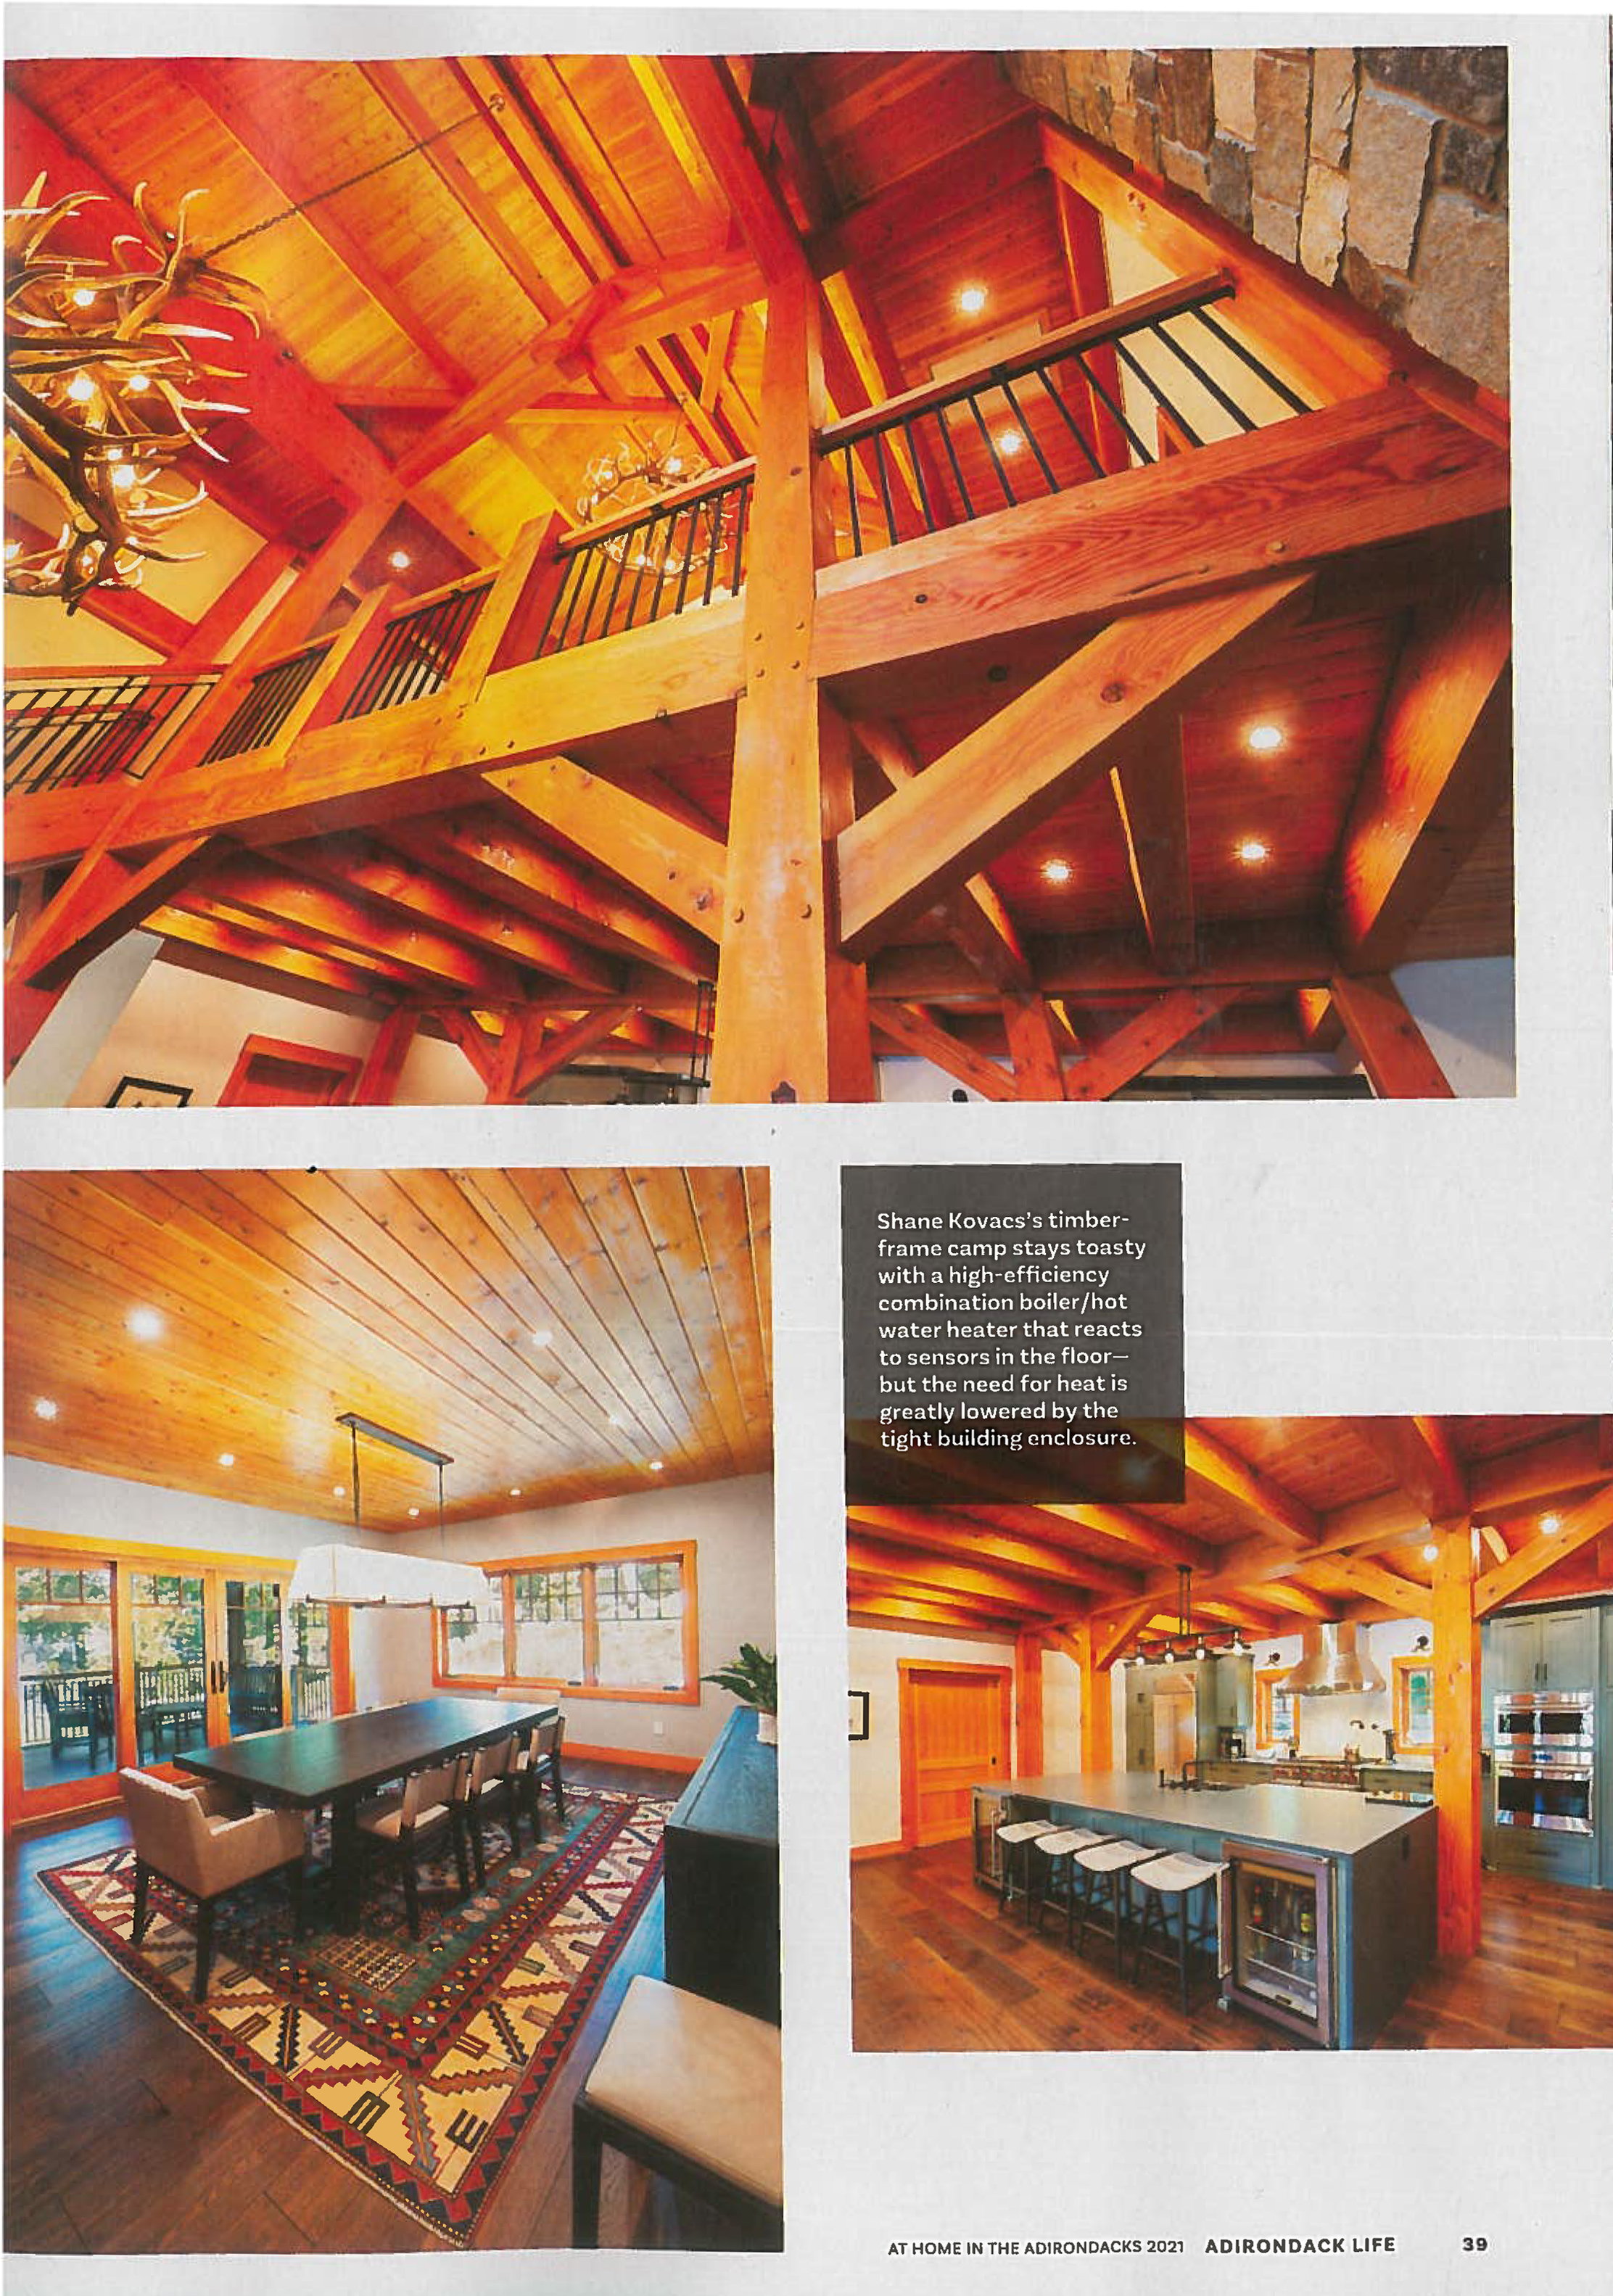 HKK Project for Kovacs featured in Adirondack Life 2021